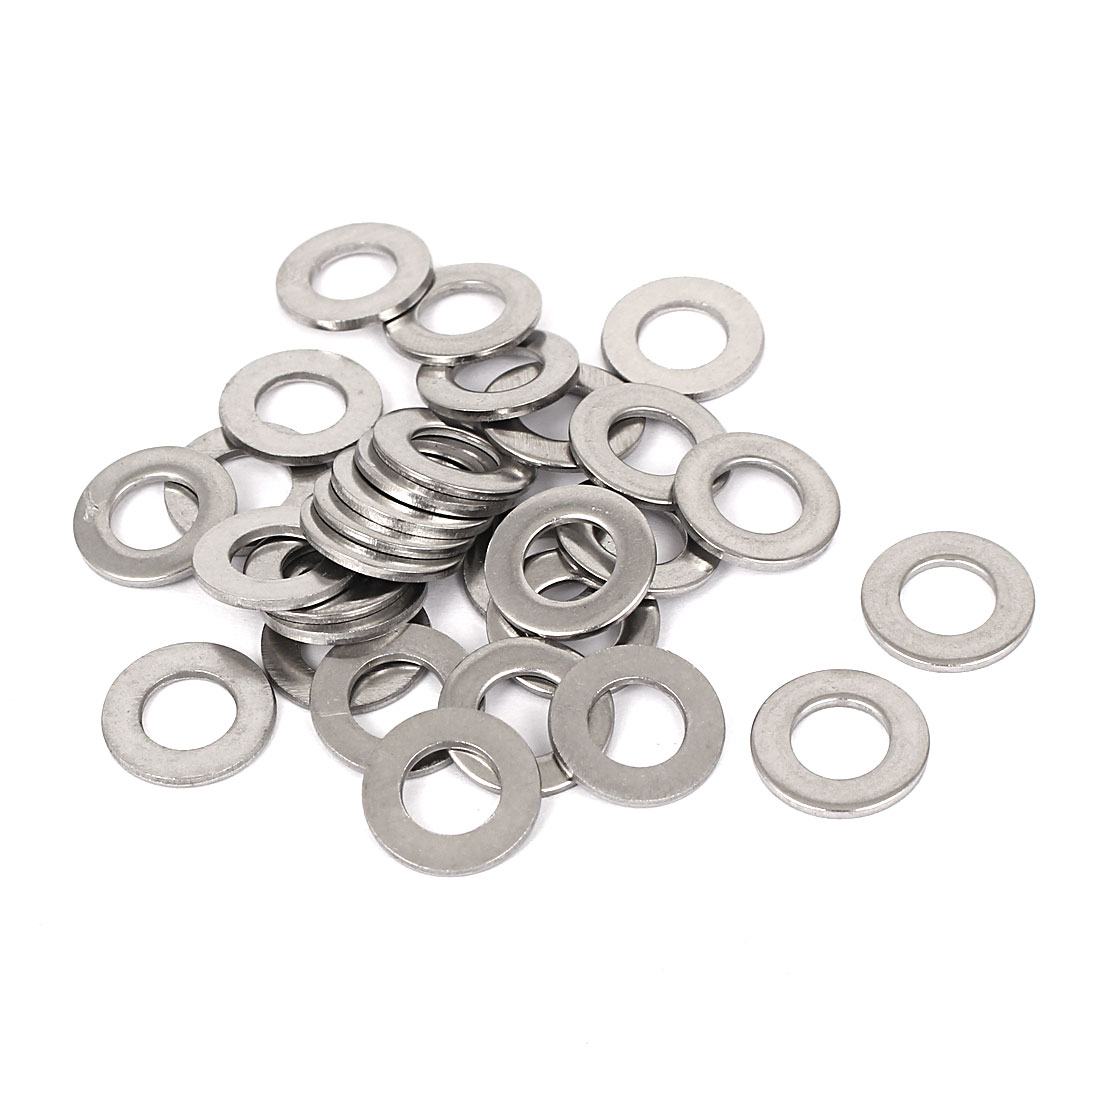 30pcs Stainless Steel Flat Washer Plain Spacer Gasket Seal Ring M8x16x1.6mm